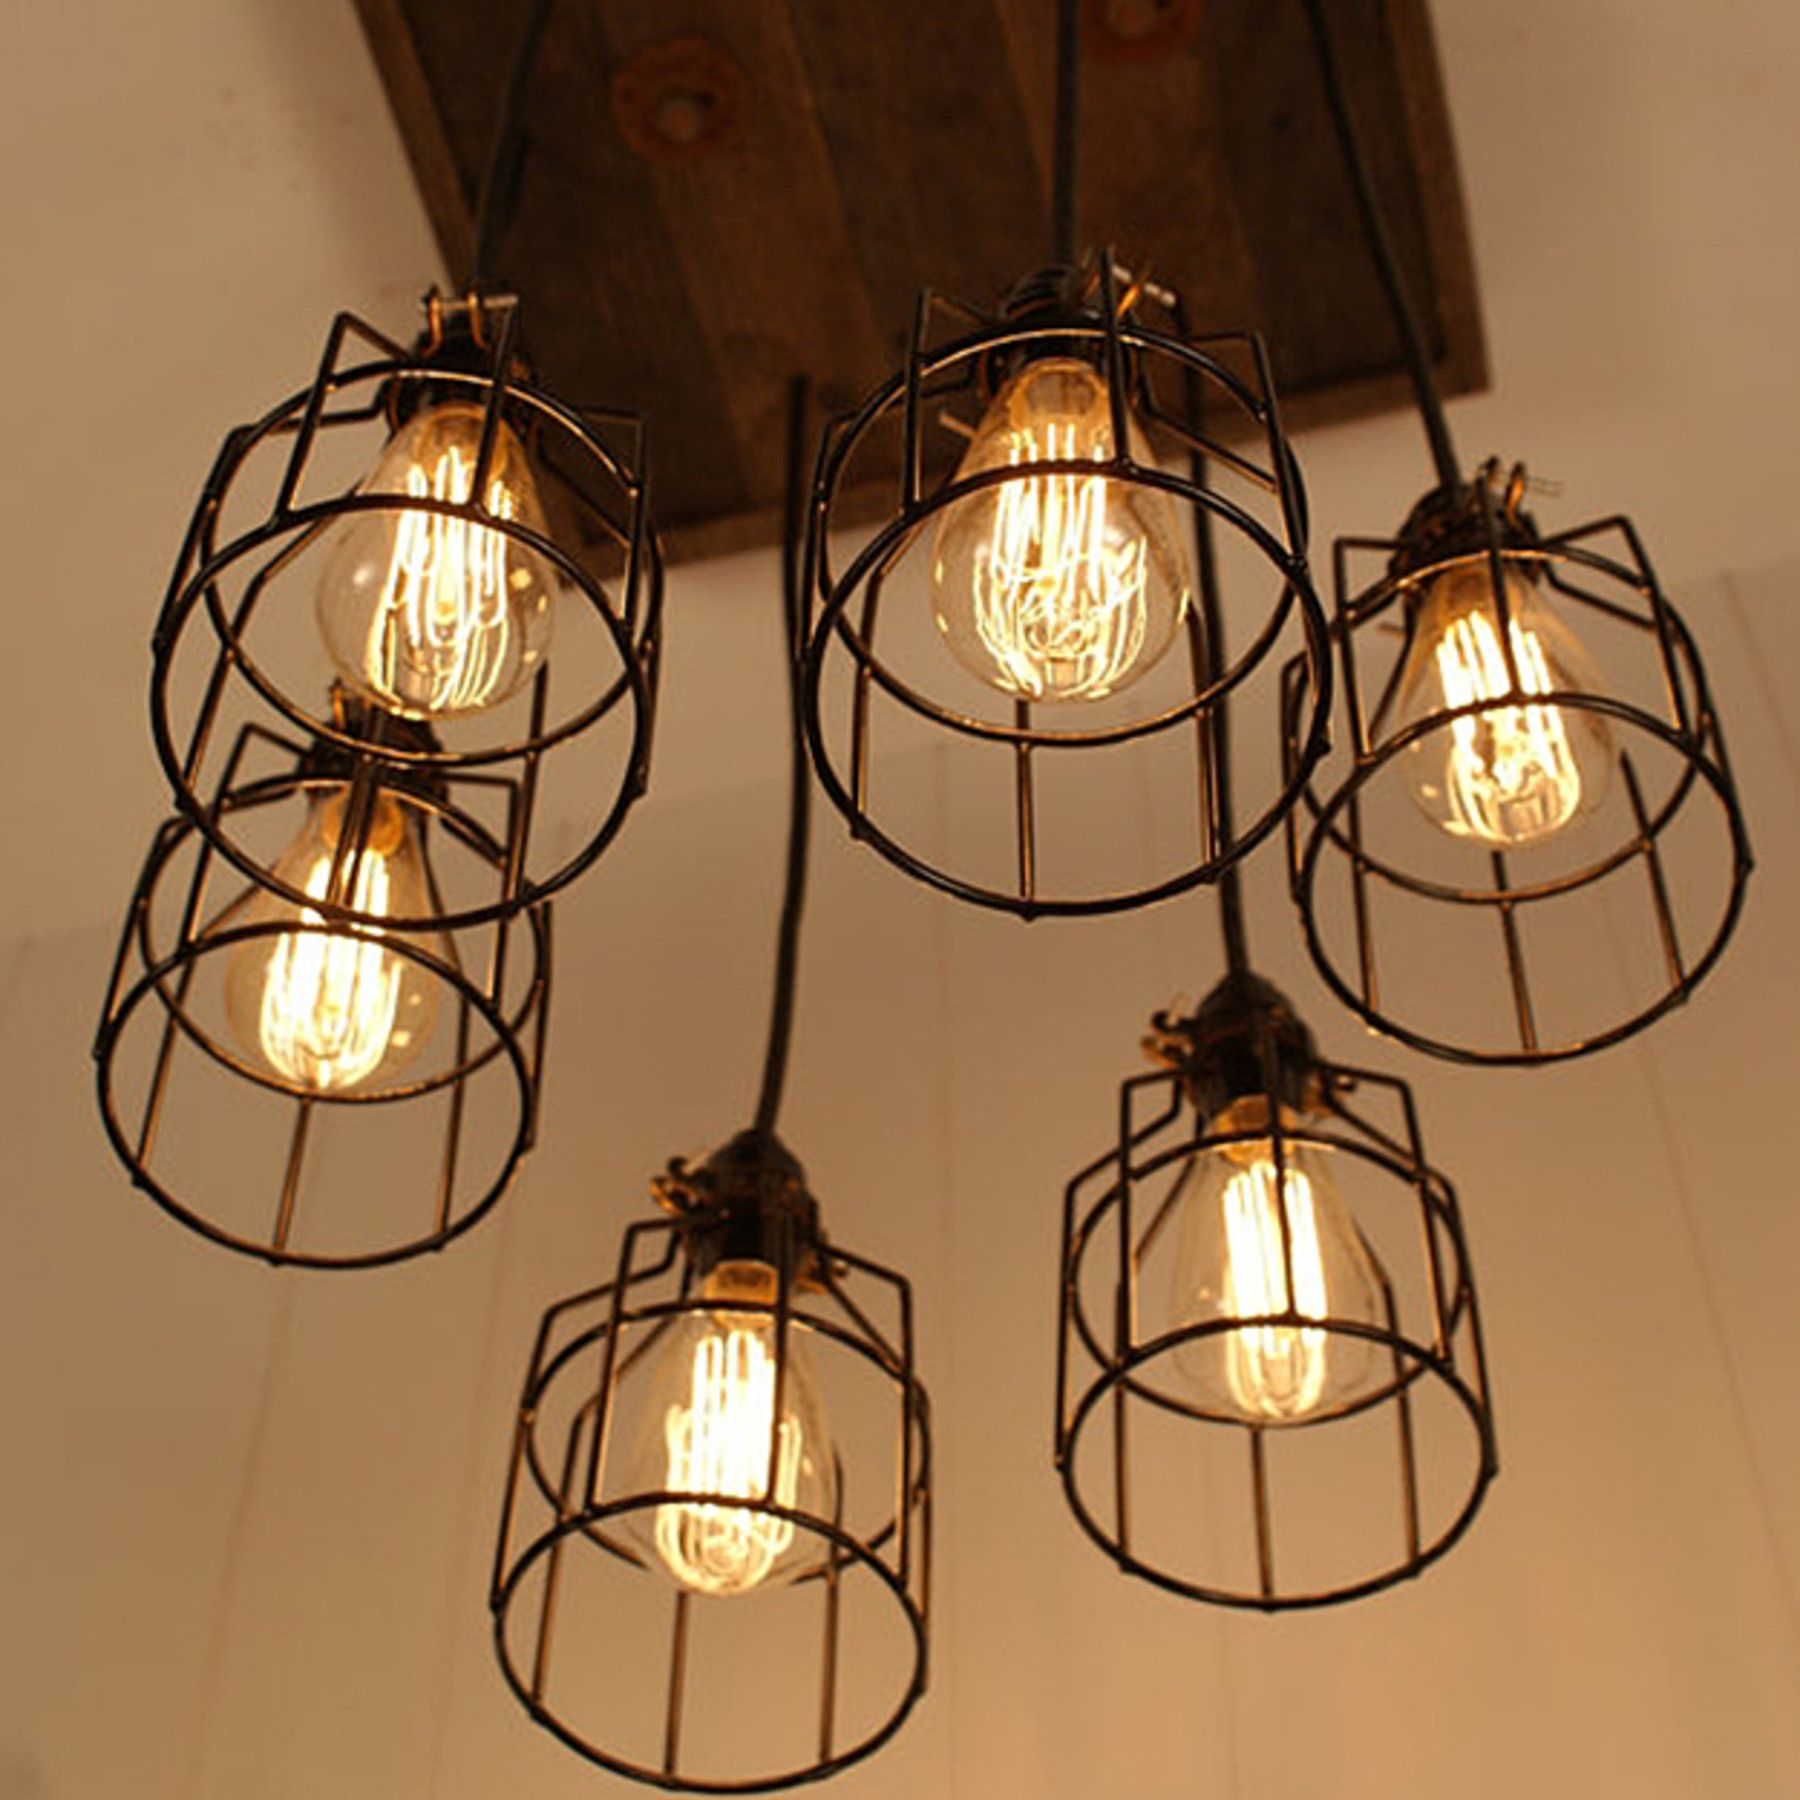 14 Light Diy Mason Jar Chandelier Rustic Cedar Rustic Wood: Handmade Cage Light Chandelier